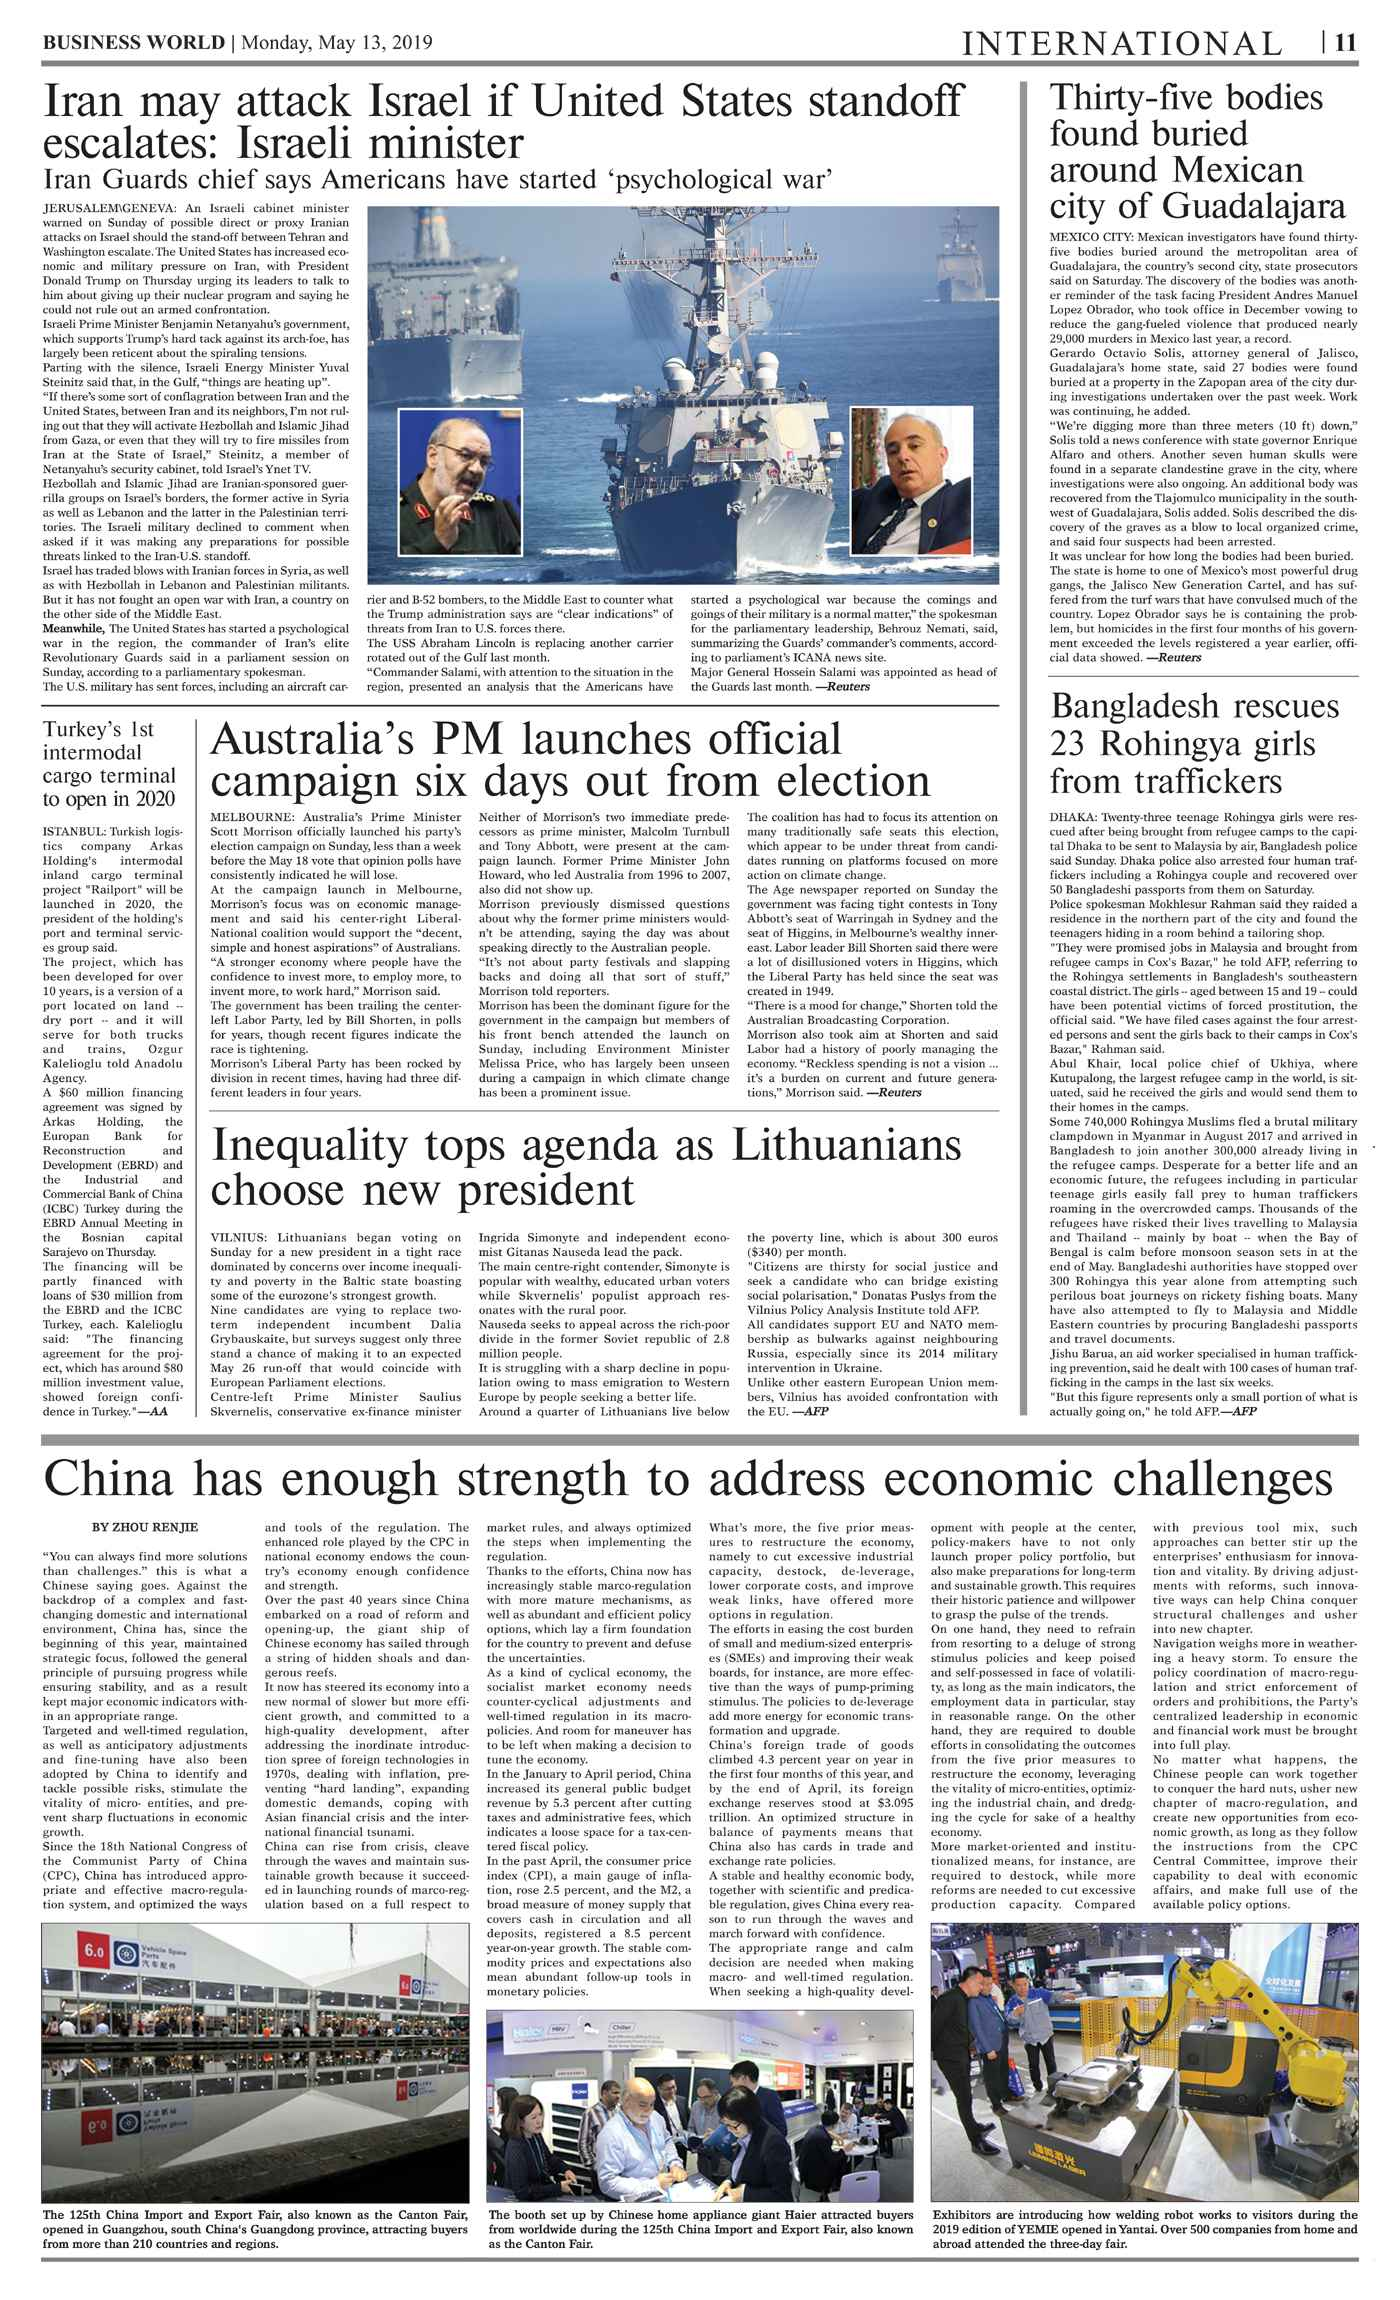 Daily Business World E-Paper 13th May 2019 - Daily Business